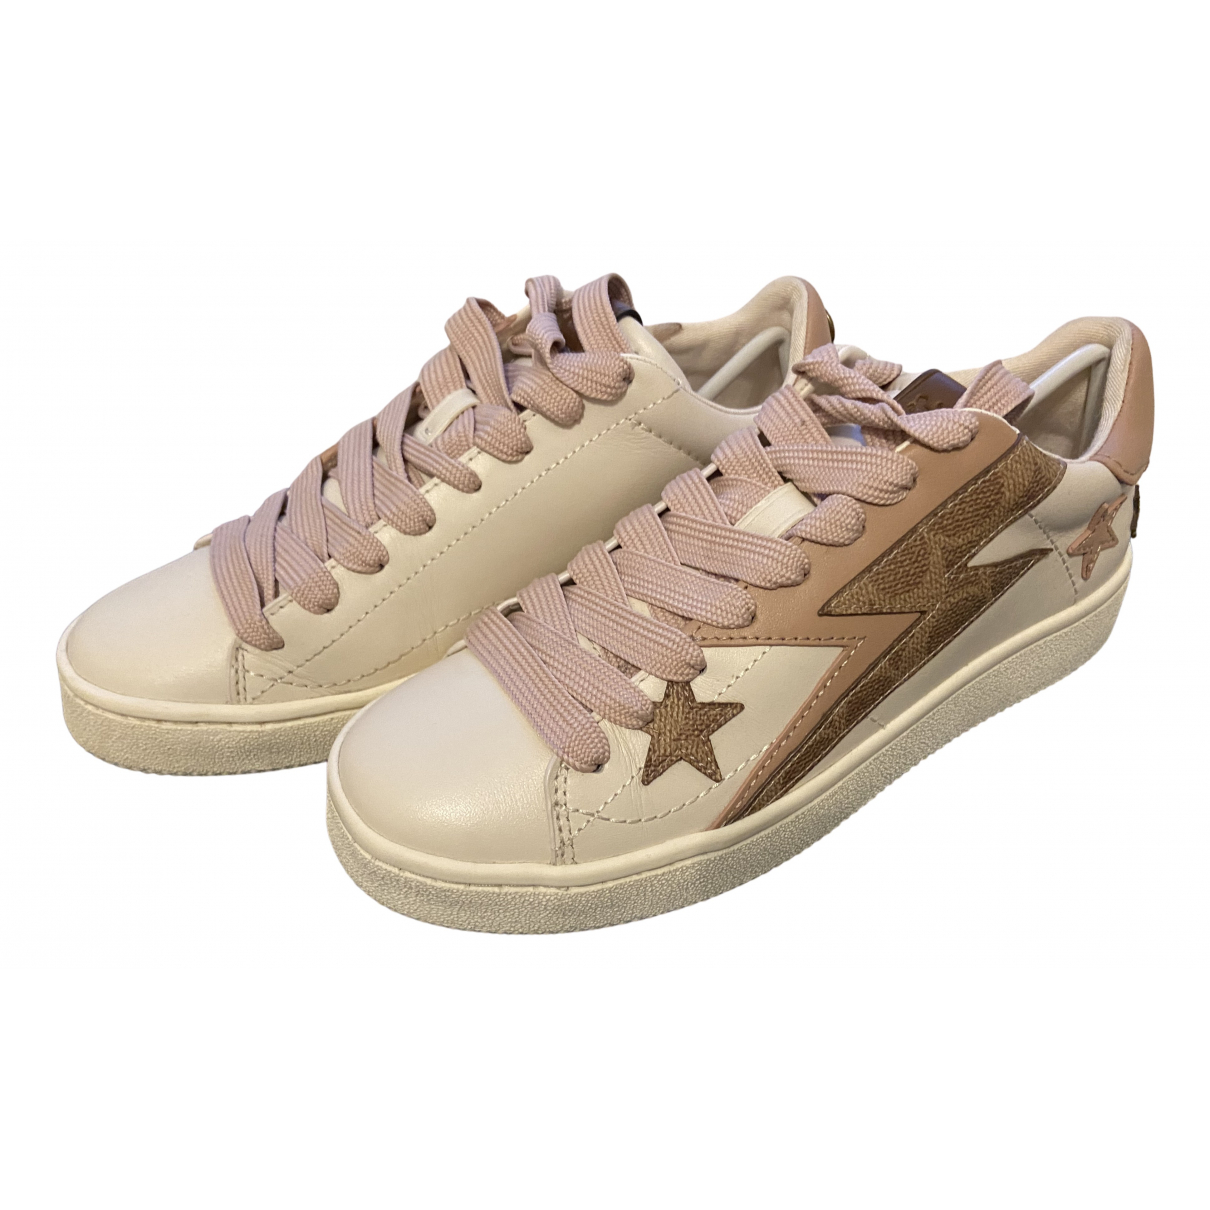 Coach N Leather Trainers for Women 5 UK